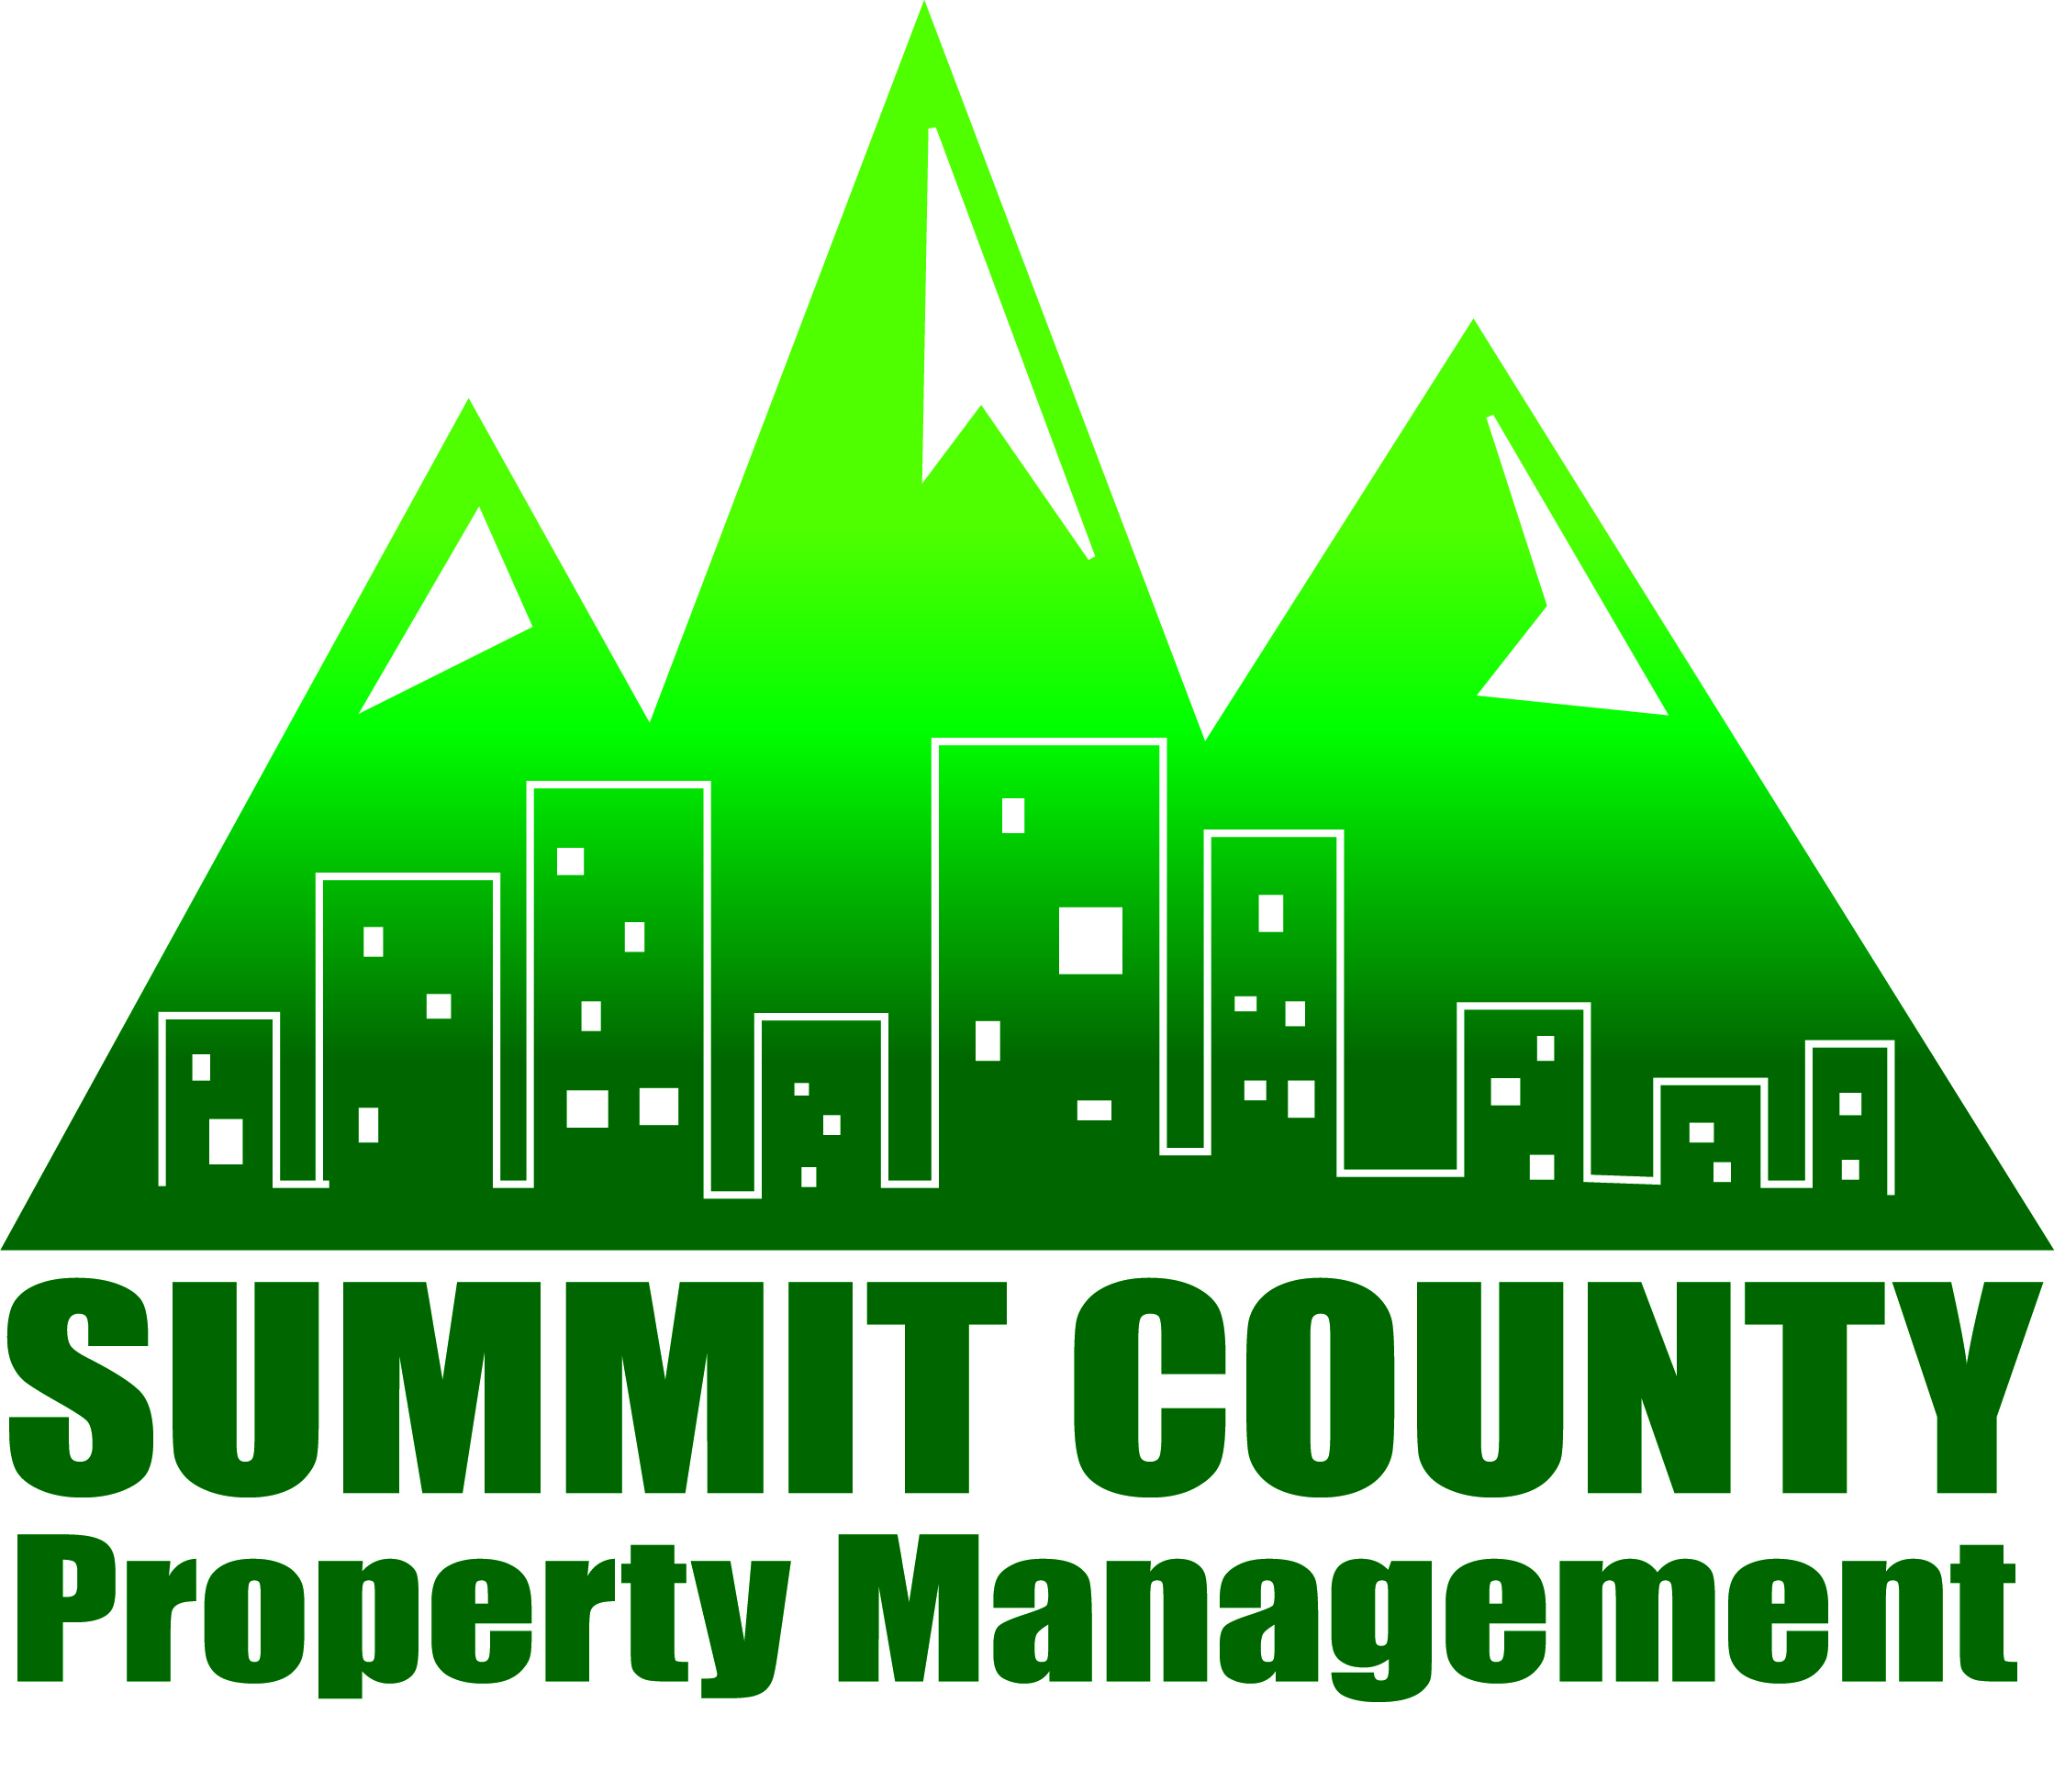 Logos For Property Management Companies Property Management Companies